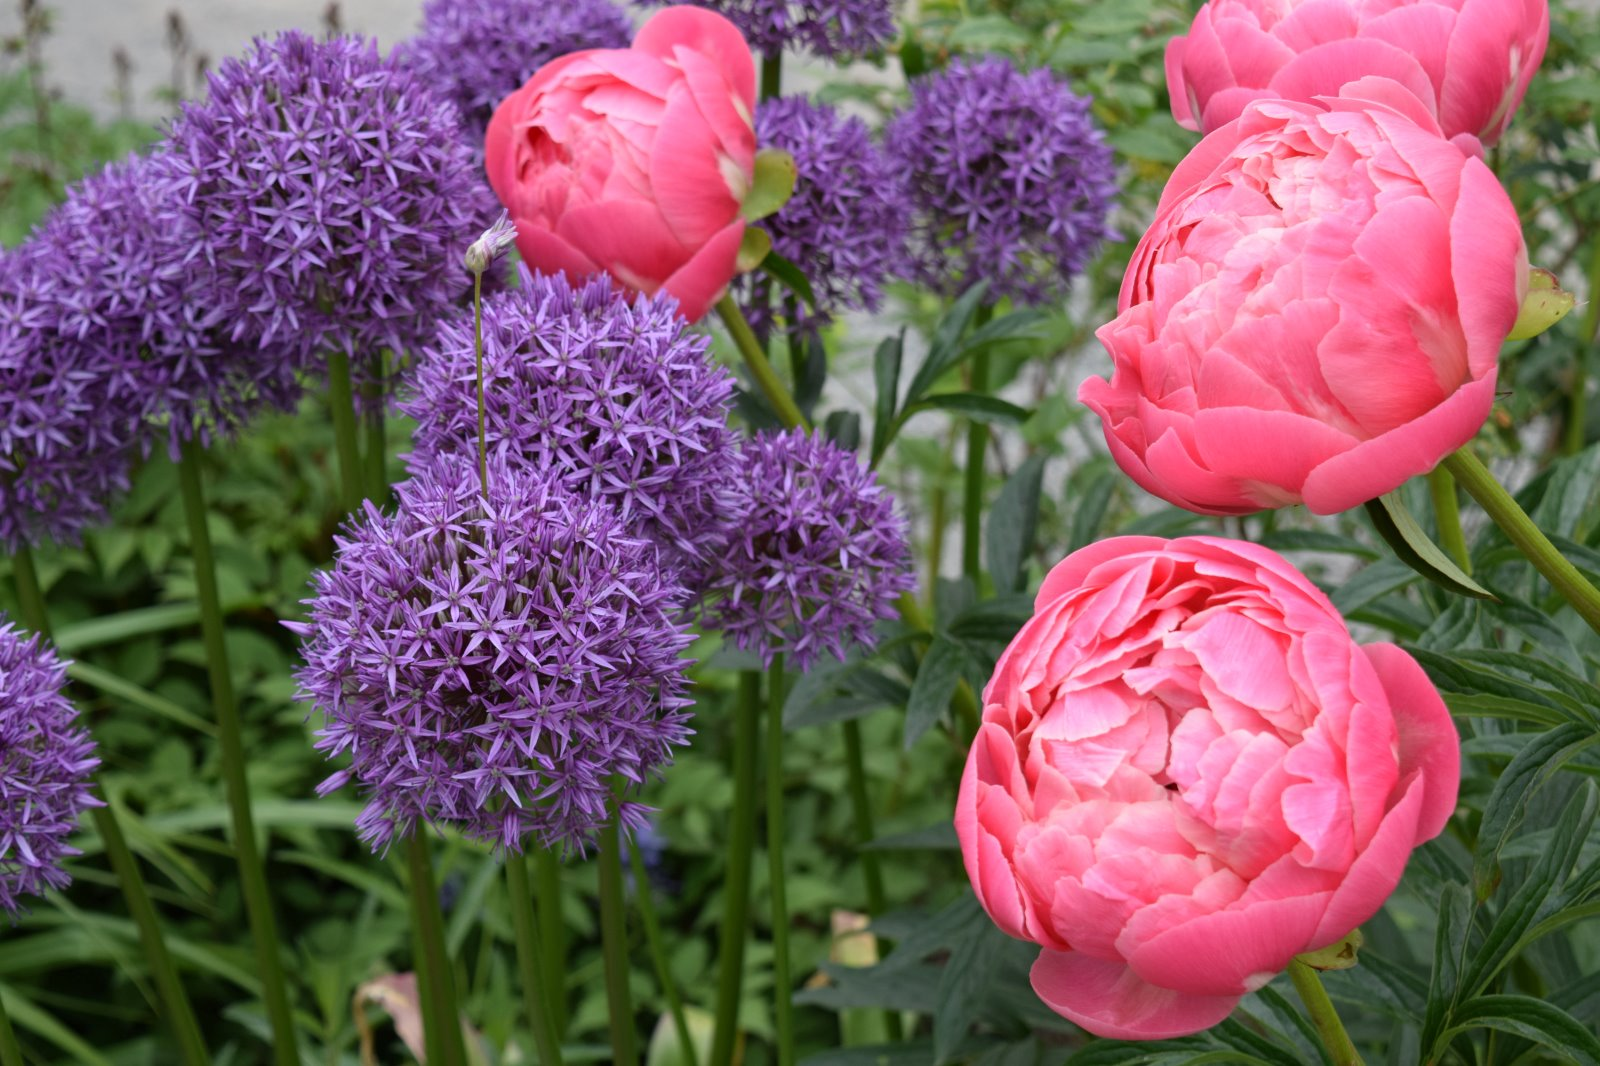 Image of alliums and peonies at Bellevue Botanical Garden -